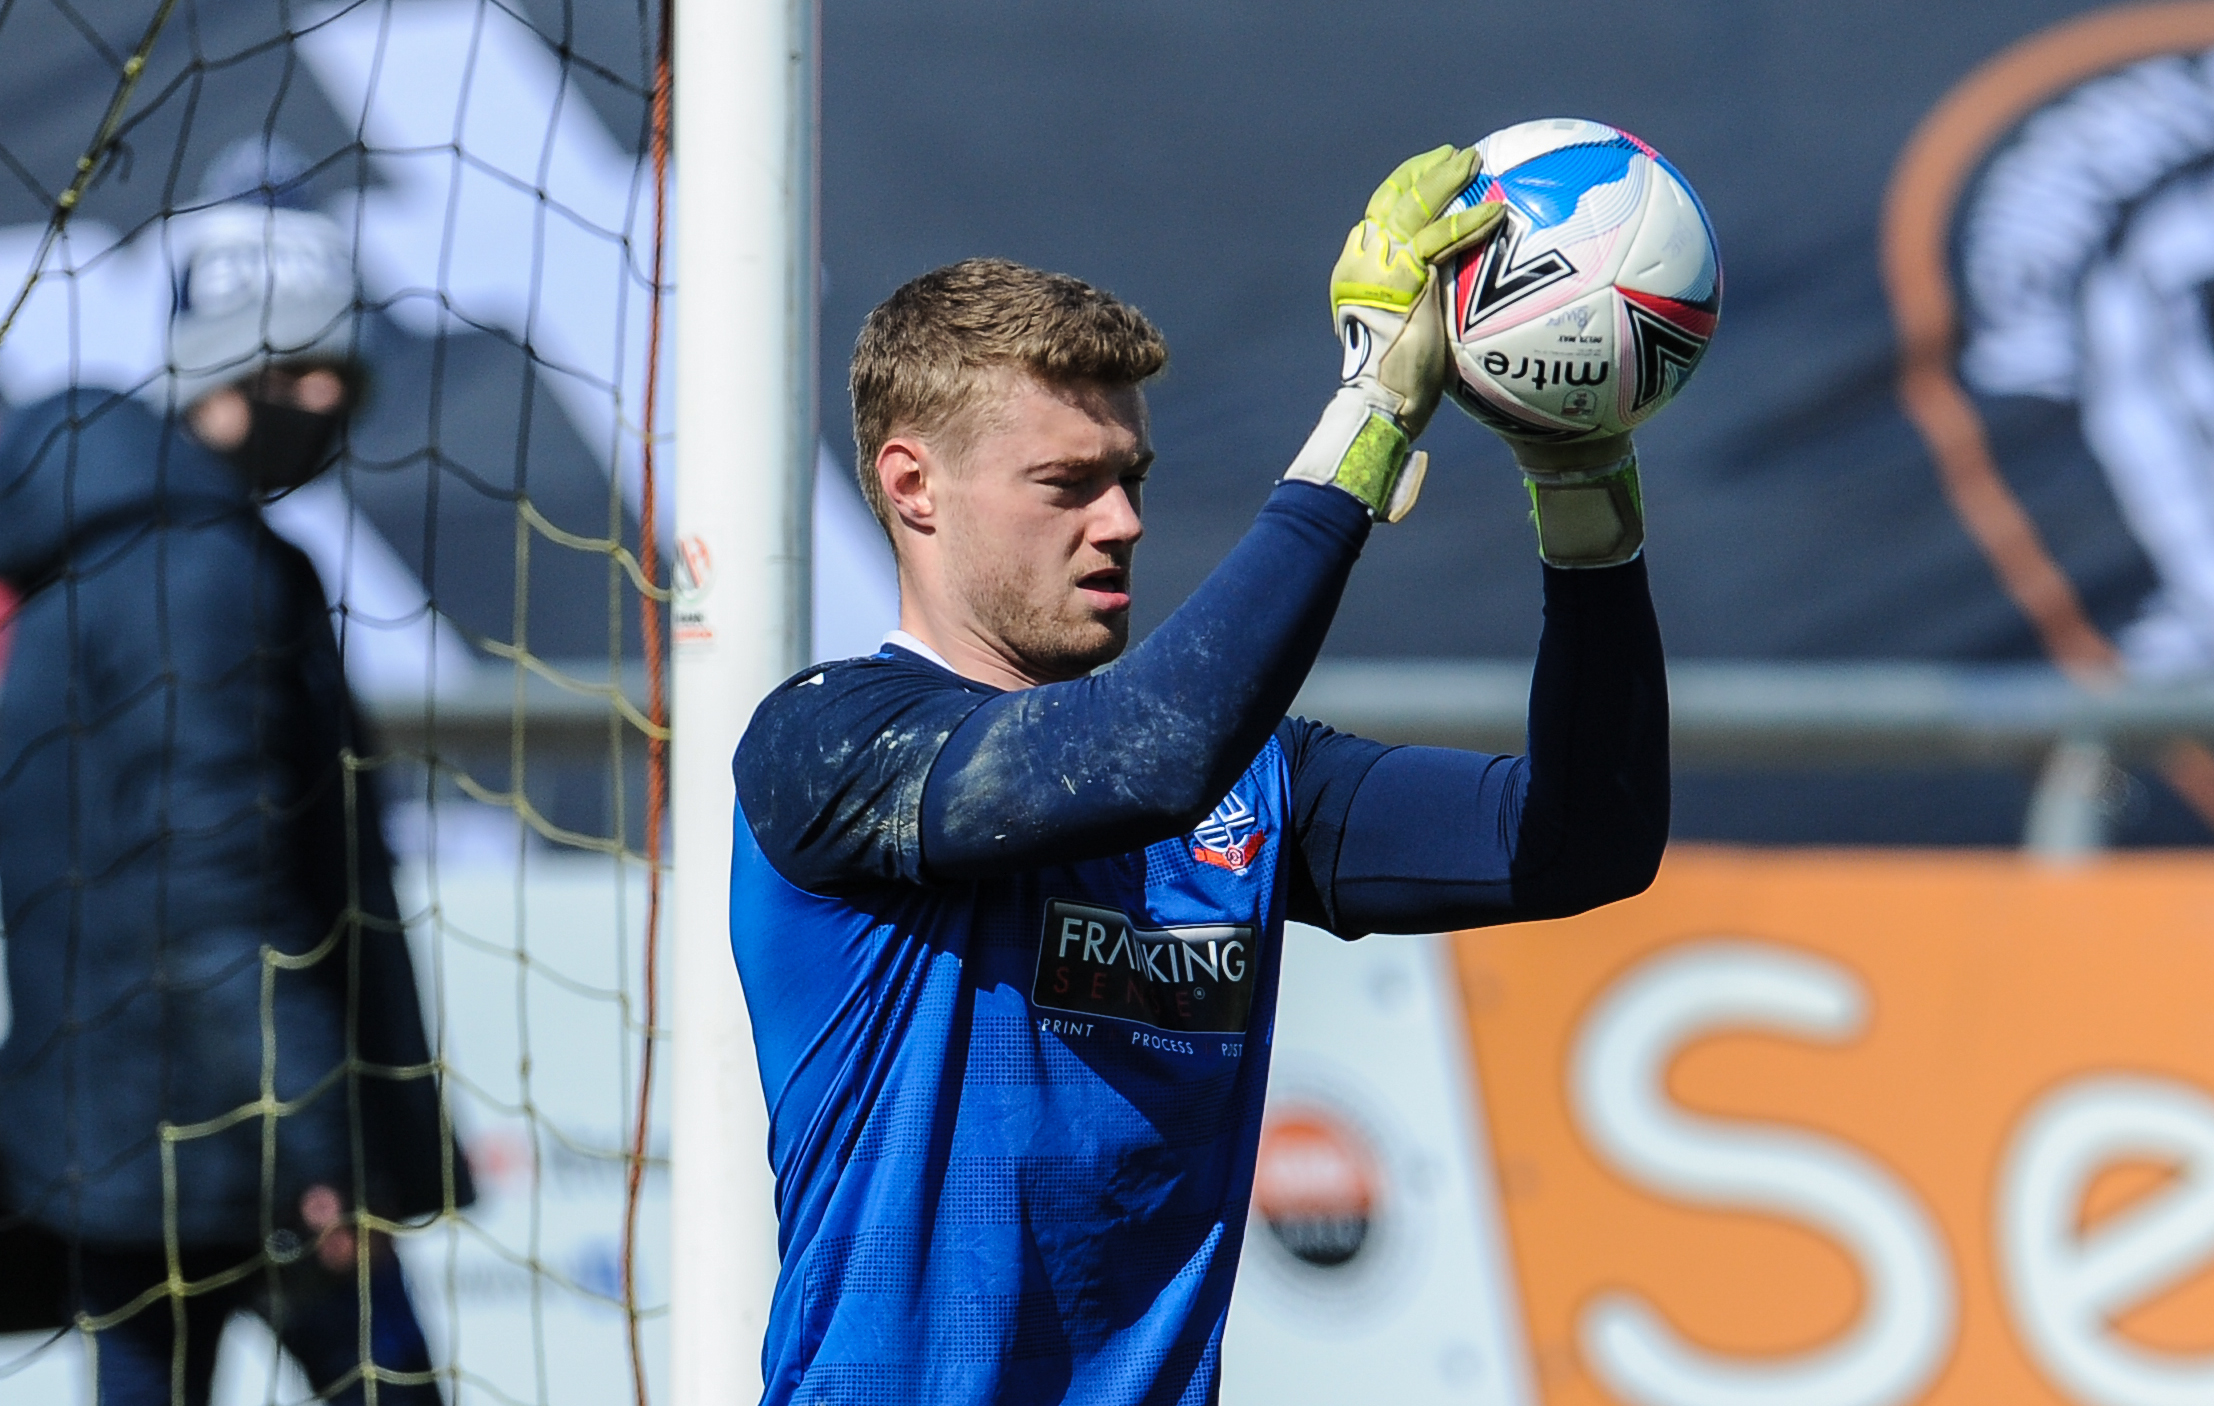 Burnley goalkeeper Lukas Jensen signs new deal and joins Carlisle on loan